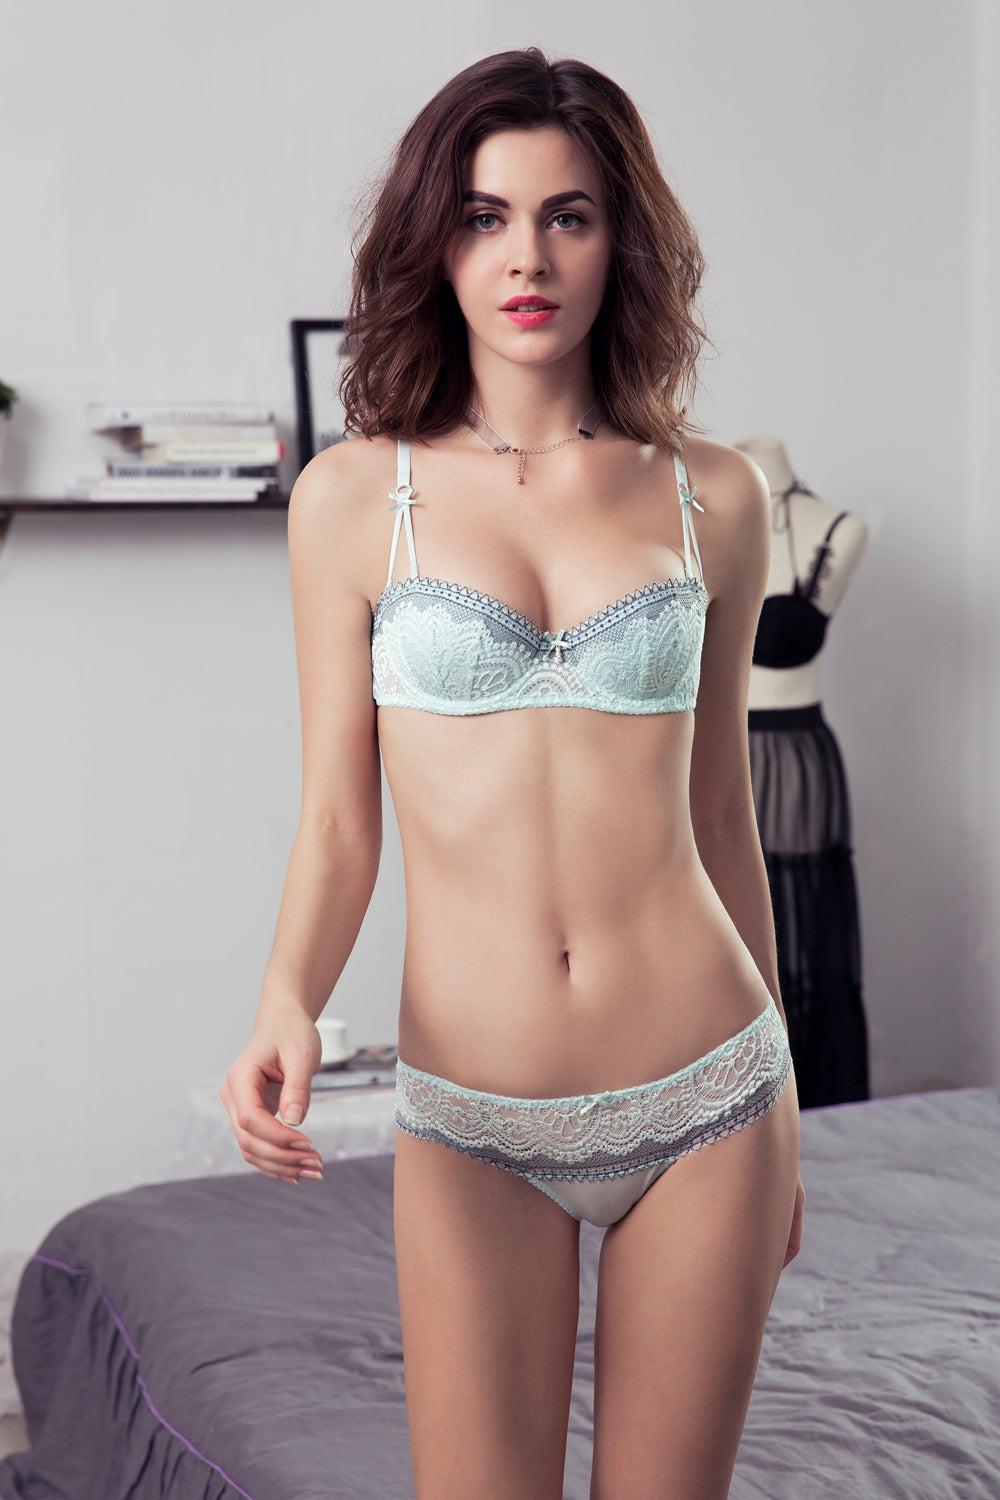 fd984c354420 1 2 Cup Sexy Push-Up Lace Bra and Panties Sets in 2 Colors and 20 ...